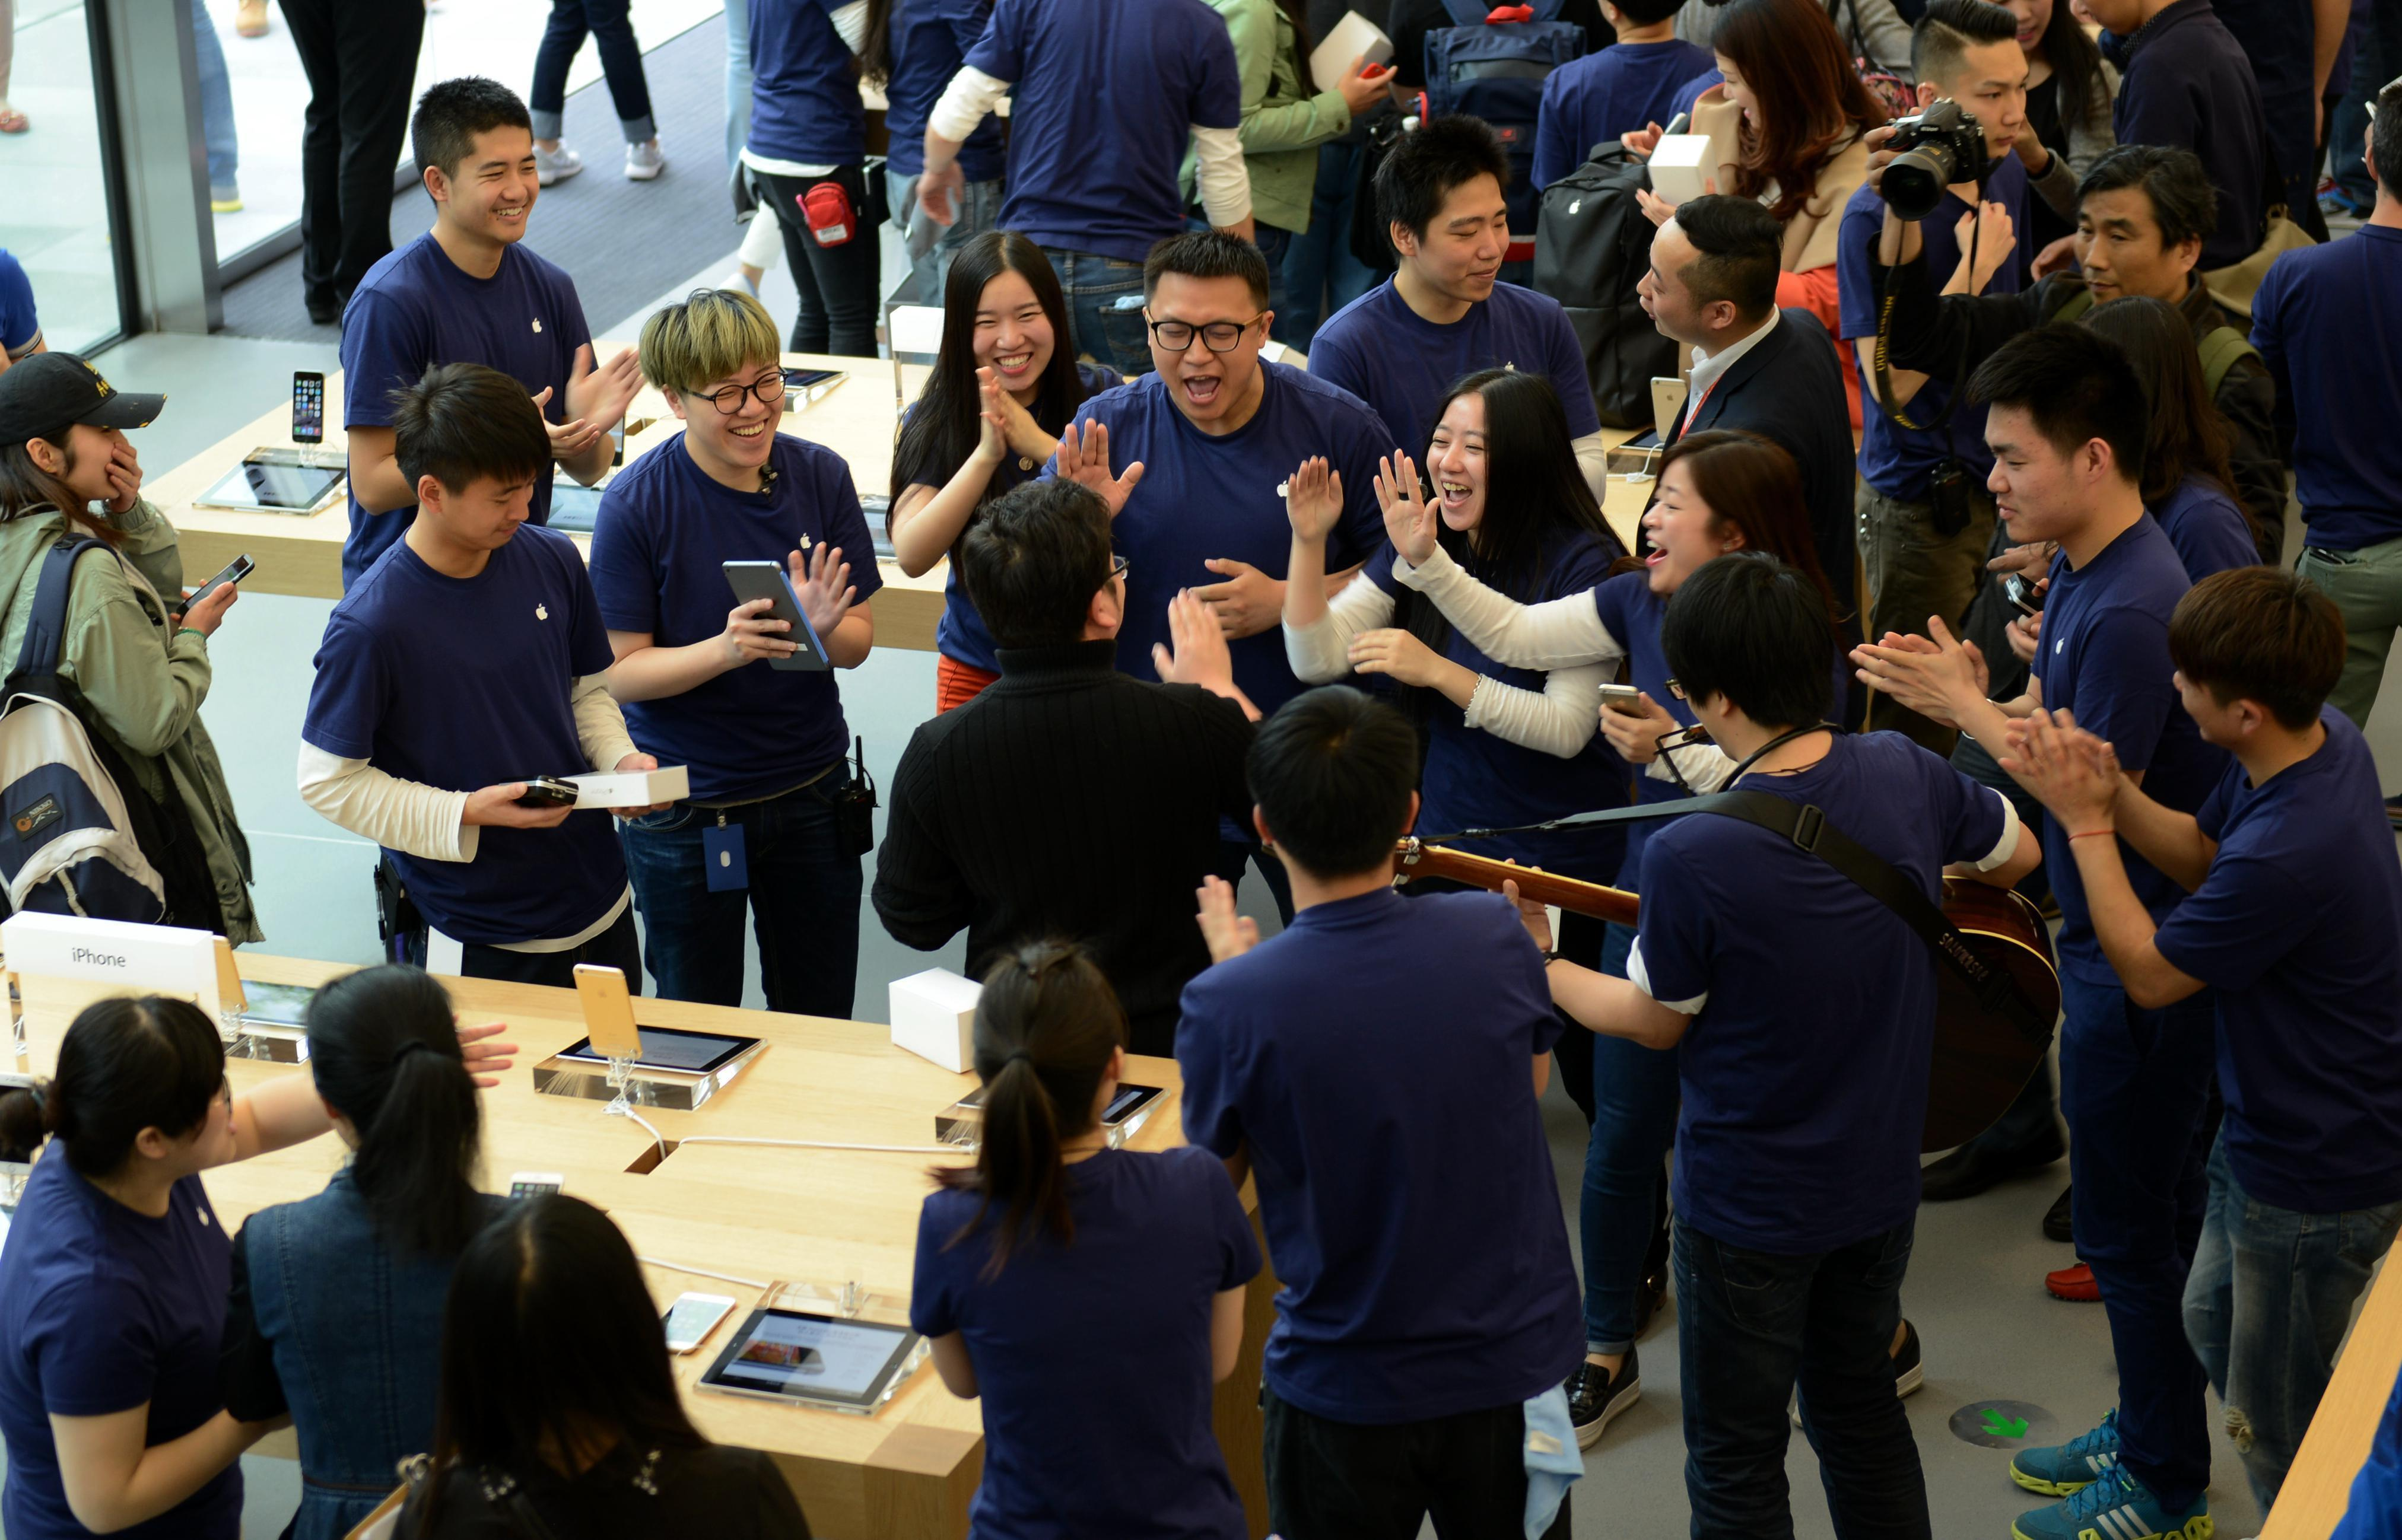 China passes US to become Apple's biggest iPhone market